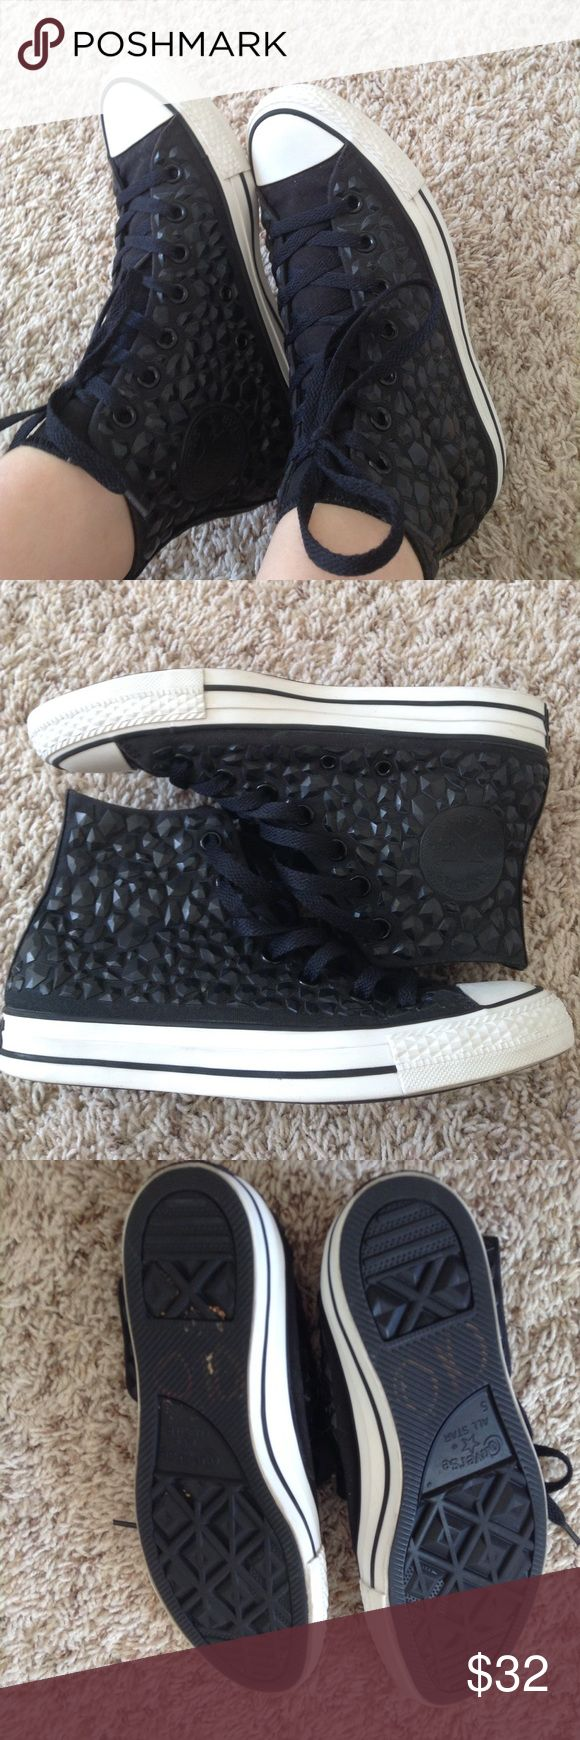 RARE Black Rock Studded Converse High-tops I've never seen any converse like these and the rocks/studs on them look absolutely stunning. Very good condition, almost new, only worn a few times. Rims are all white, no marks or stains on the canvas, and soles have barely any wear on them. Offers are always welcome!😊 Converse Shoes Sneakers